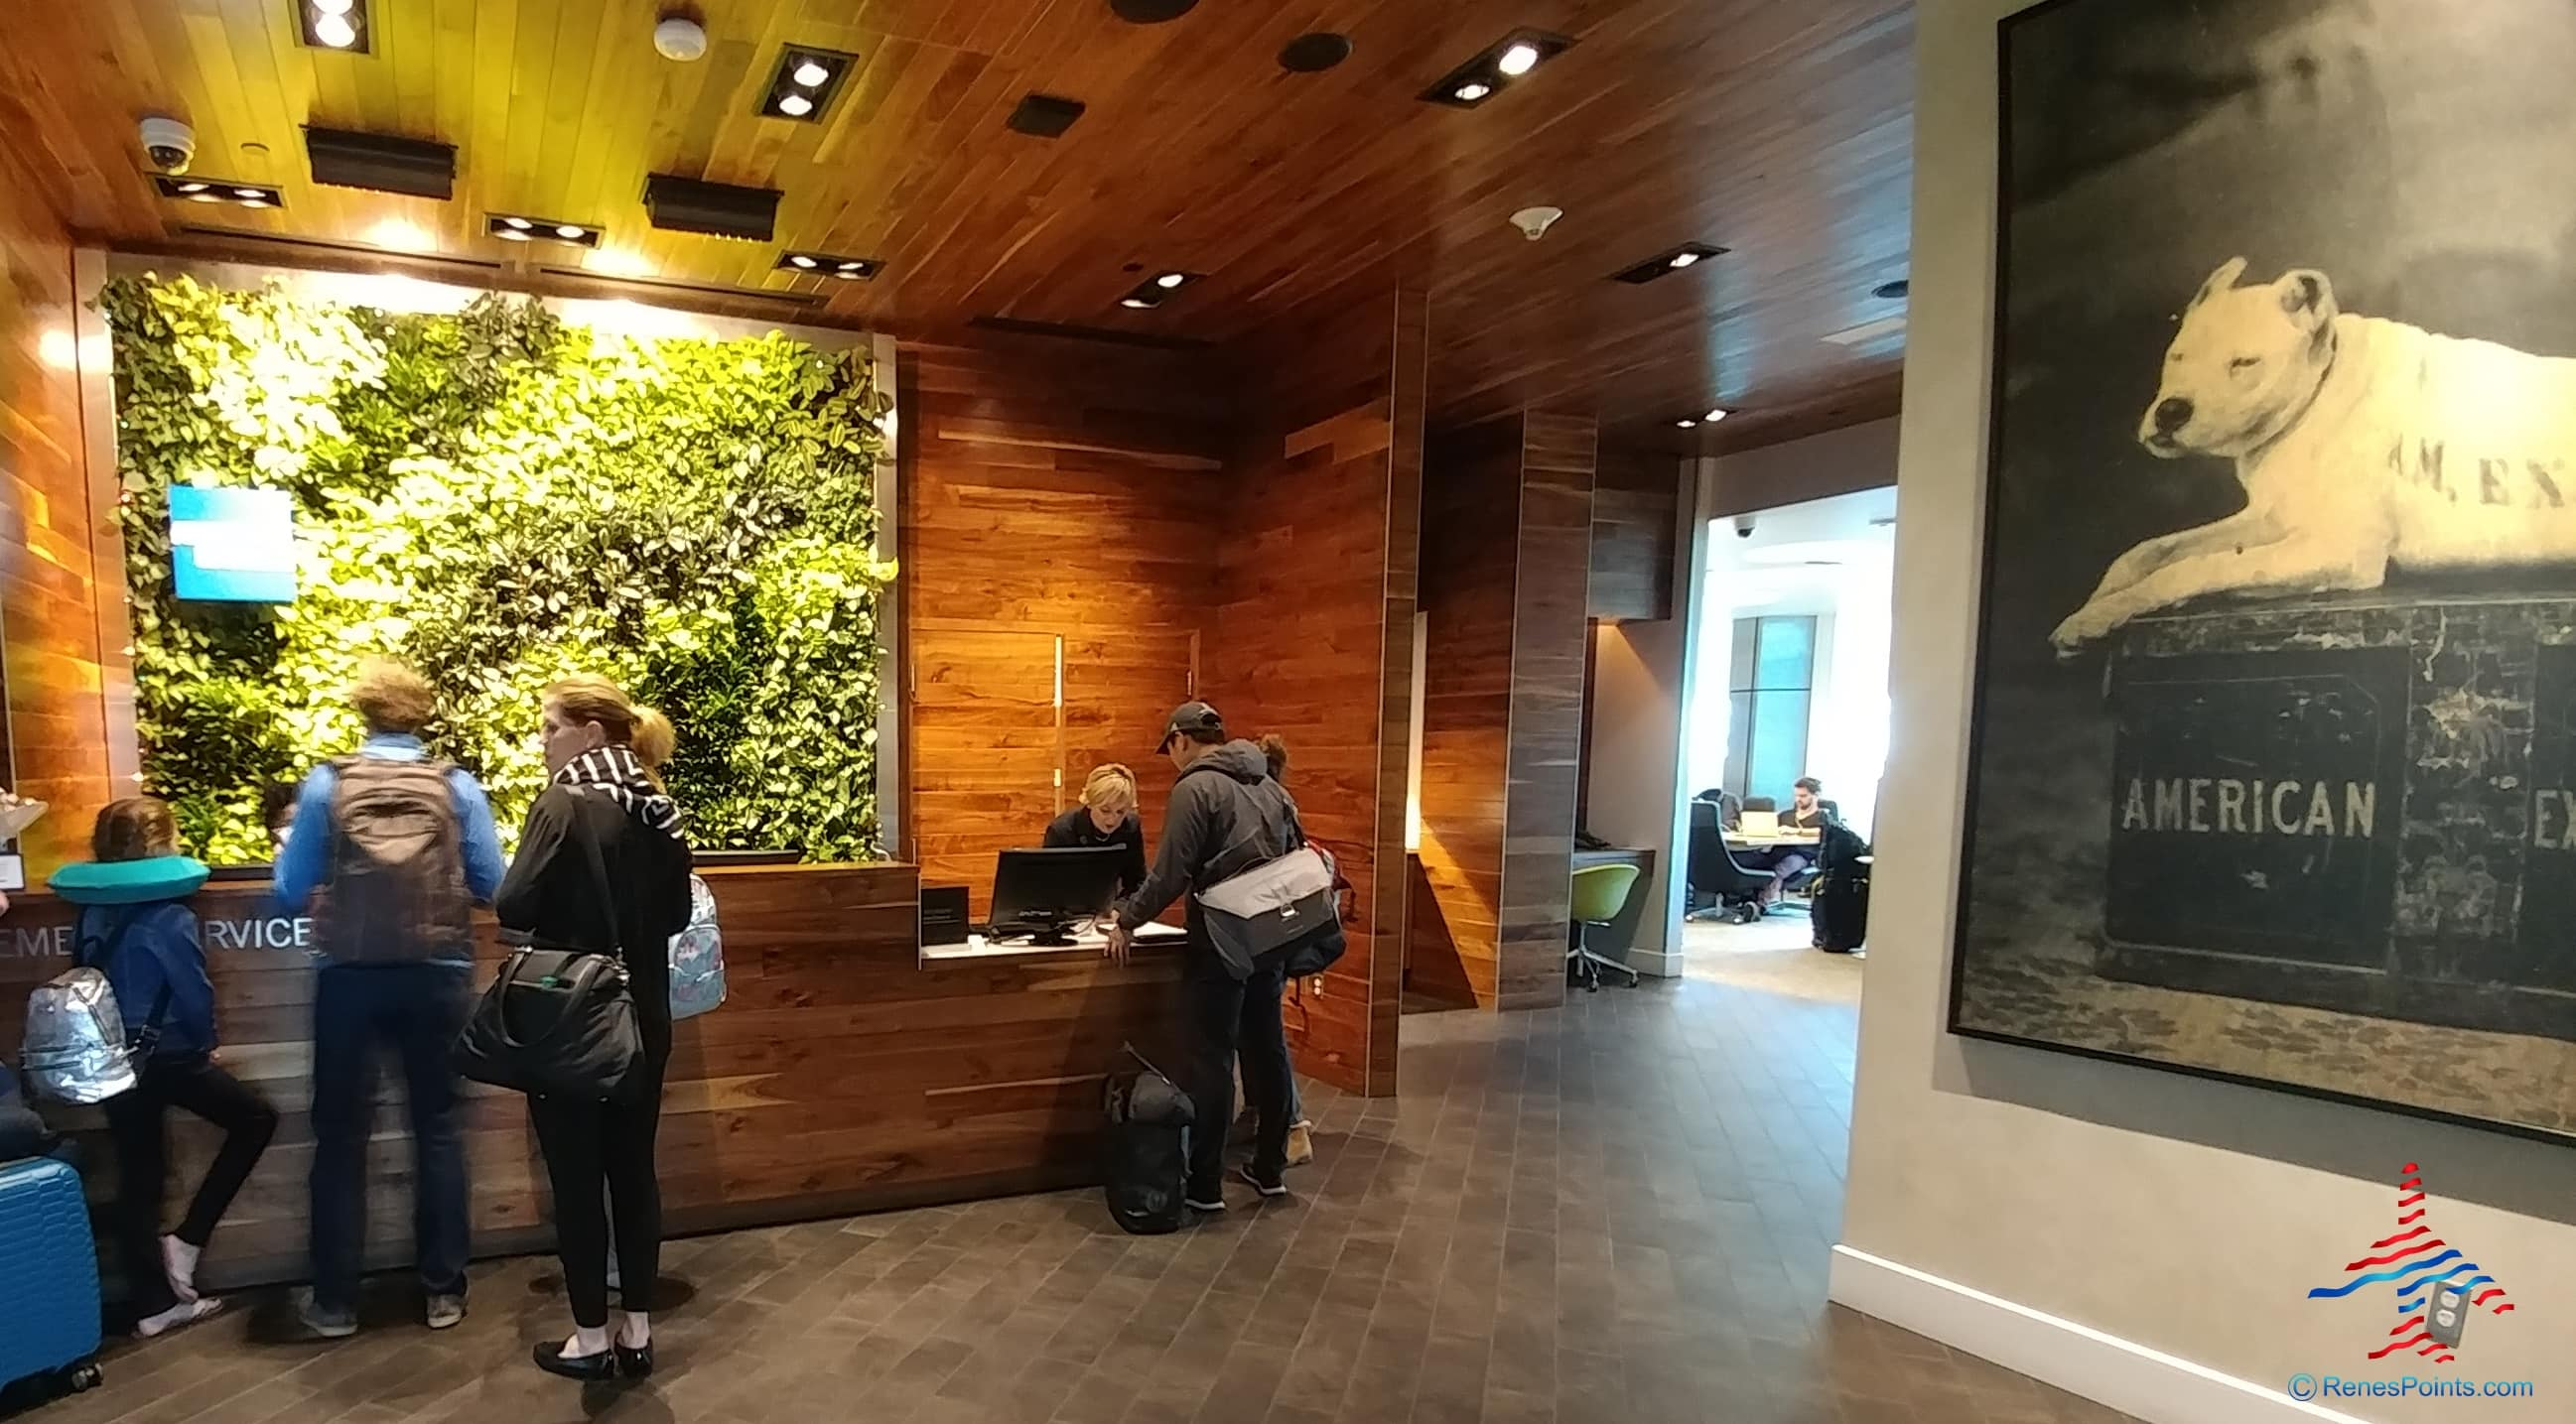 American Express Centurion Lounge at Dallas/Ft, Worth International Airport